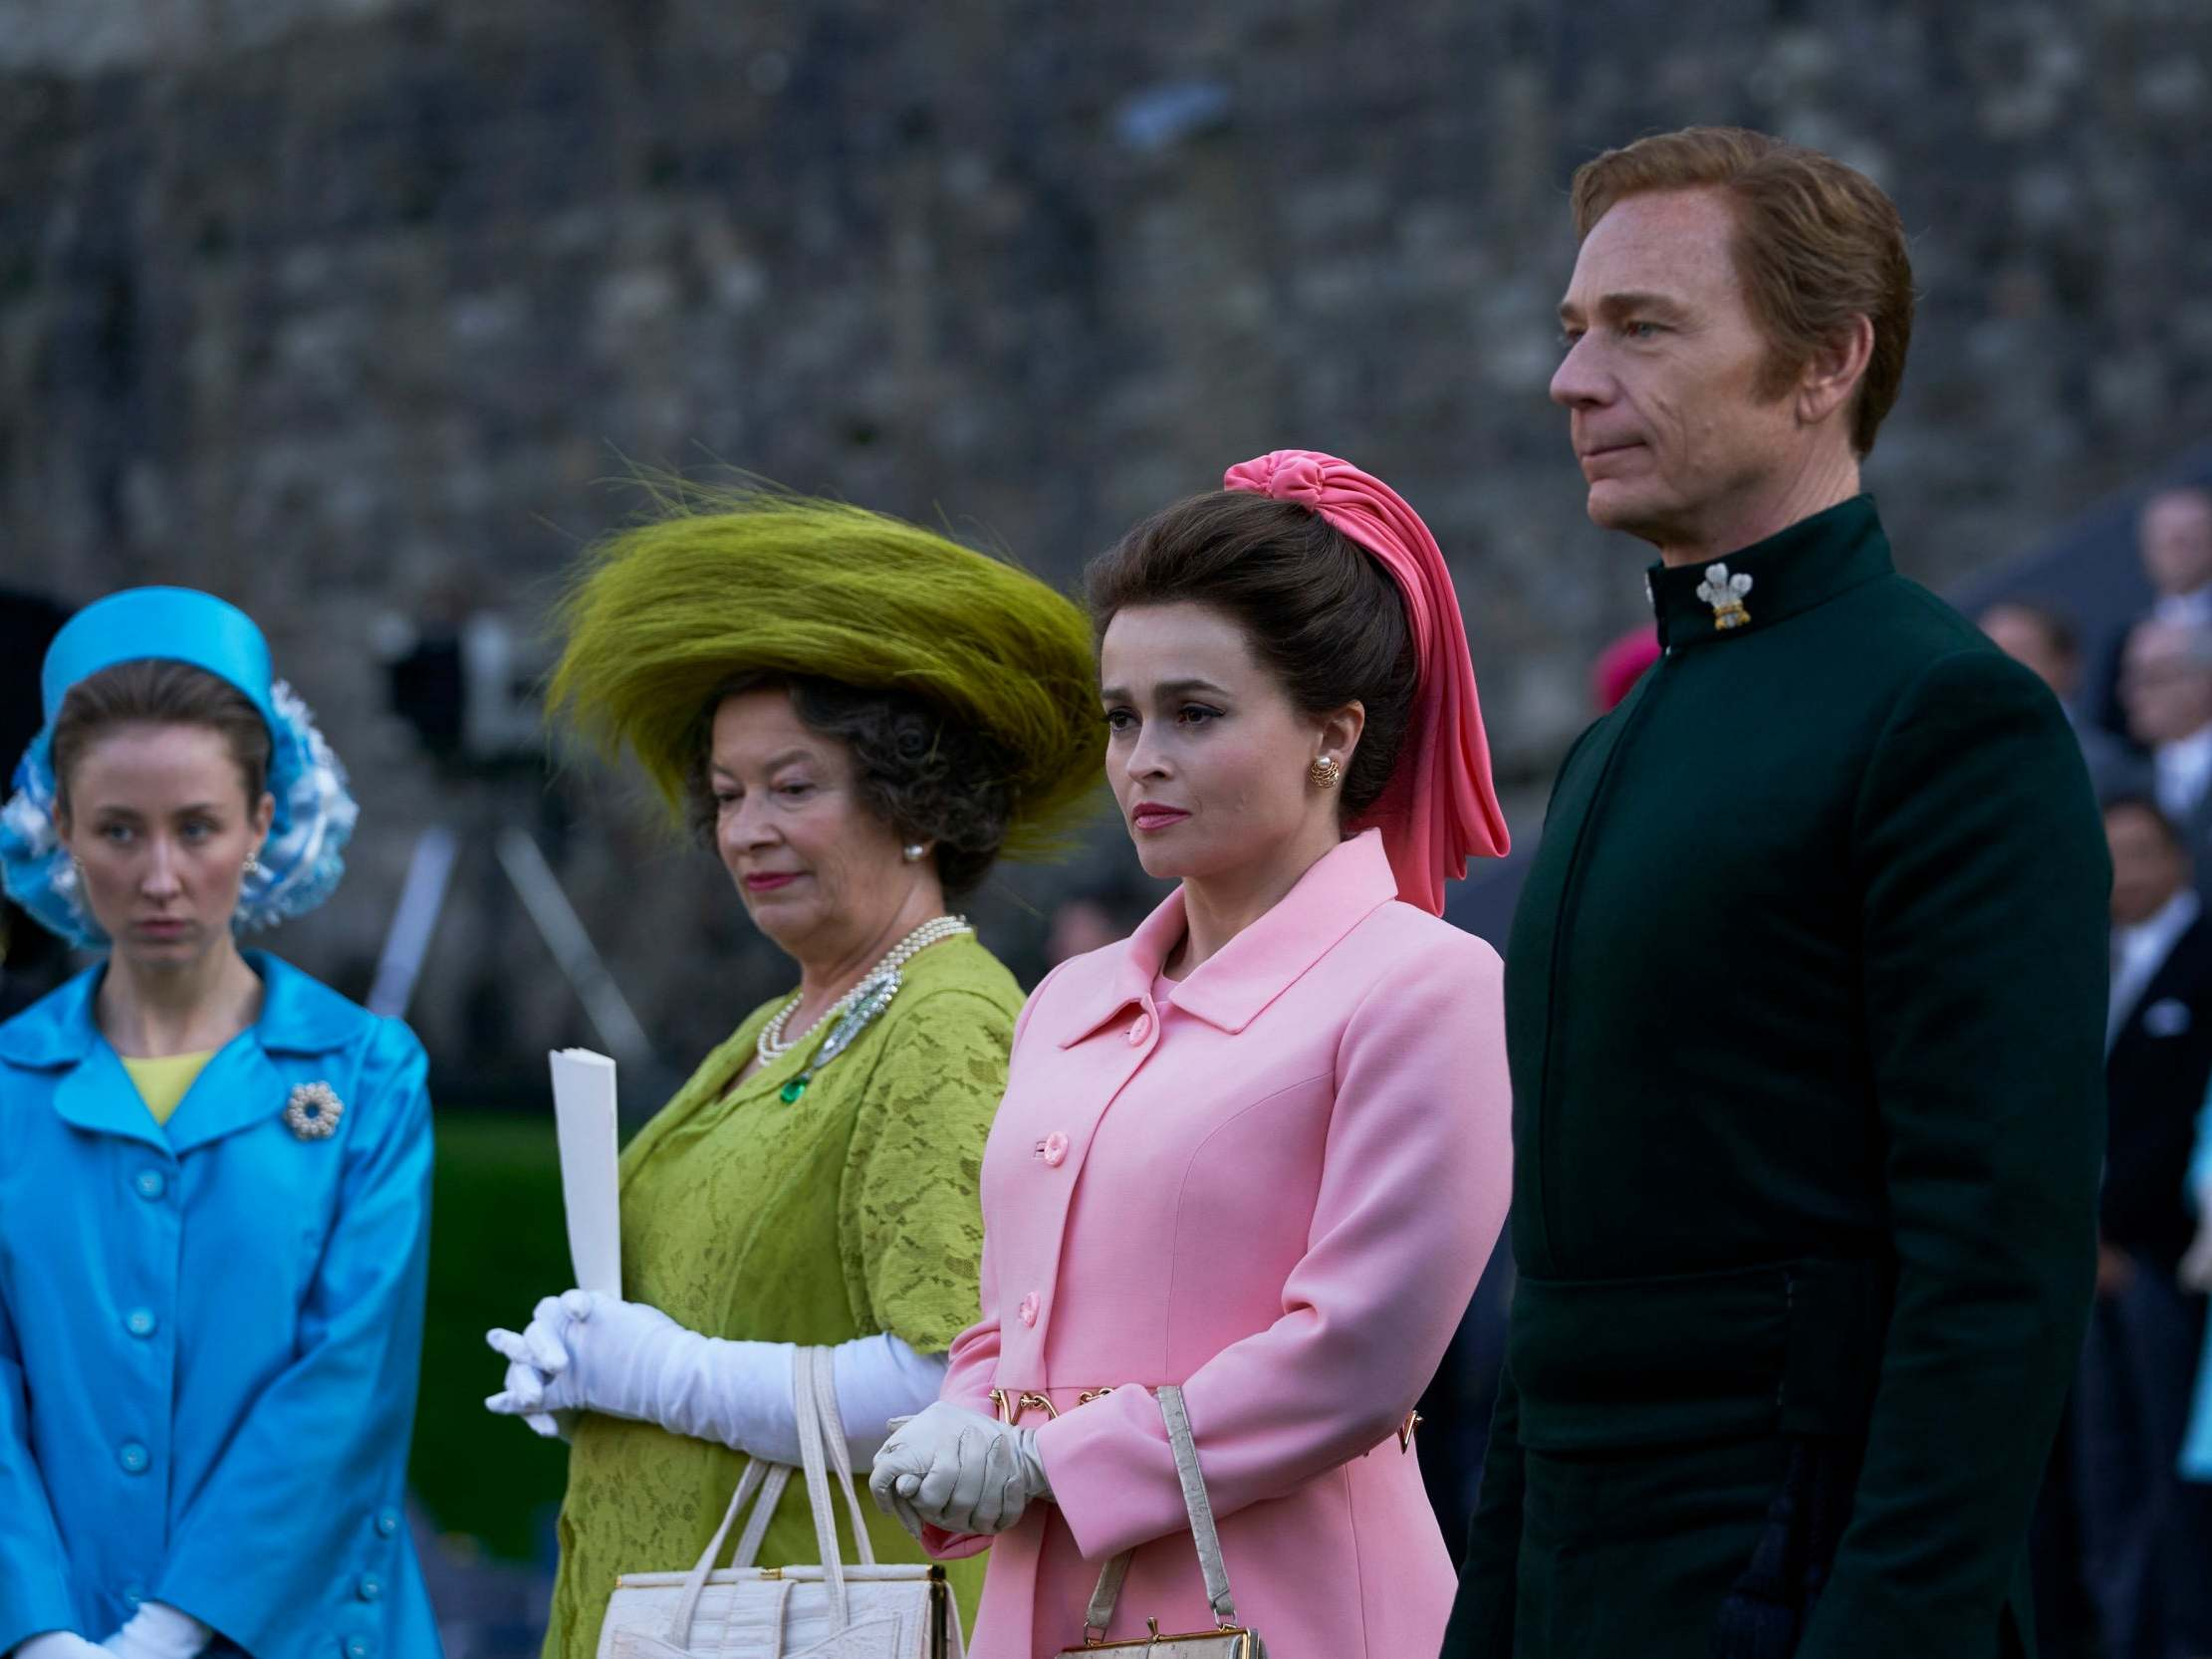 The Crown: The real life events surrounding the third season of the Netflix period drama